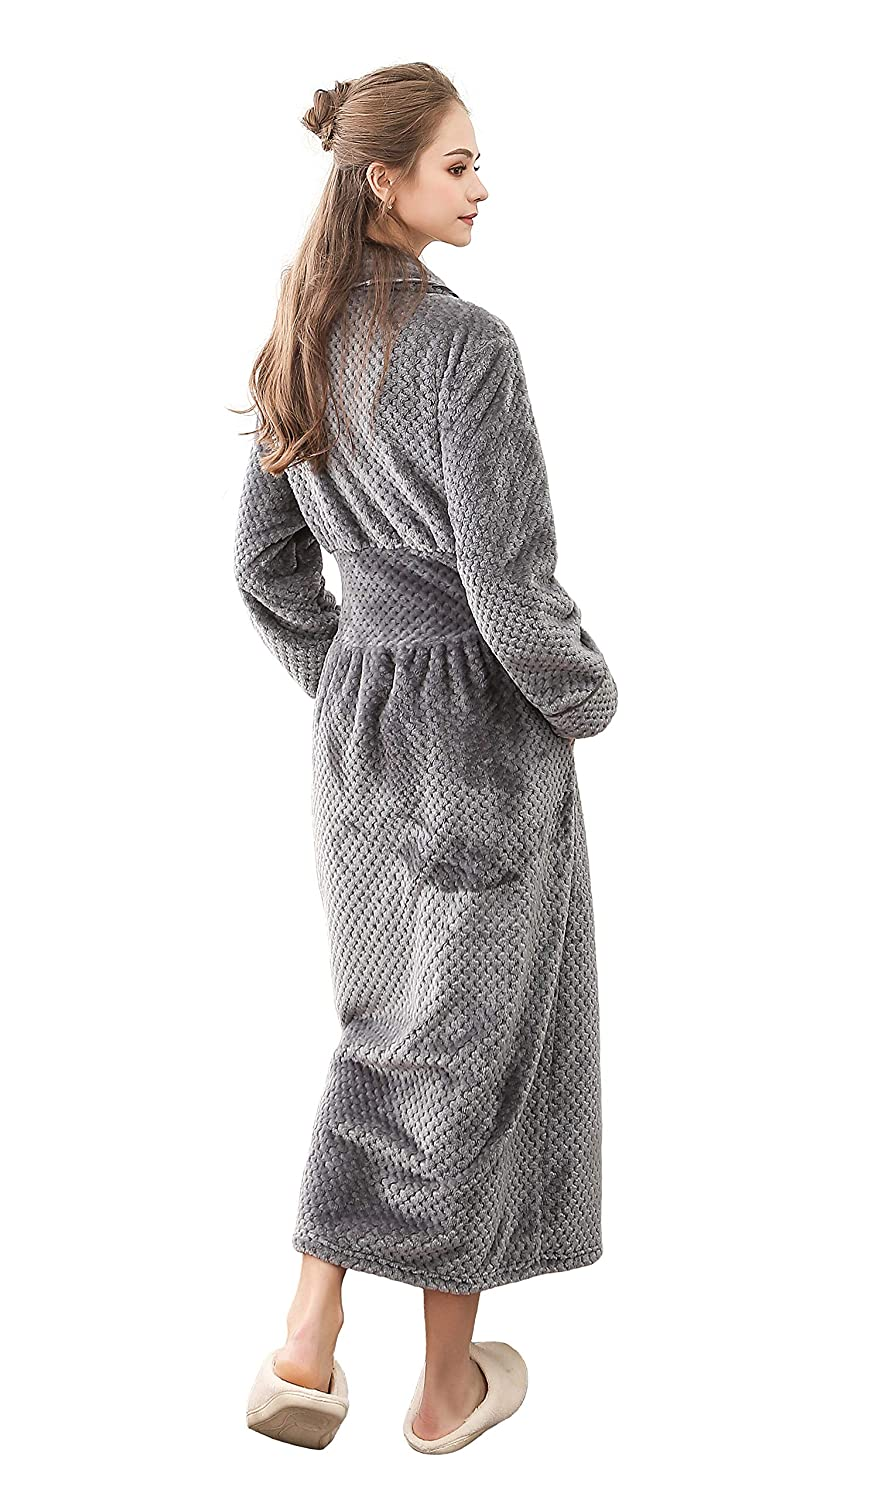 Honofash Towelling Dressing Gown Bathrobe Women Terry Ladies Fluffy